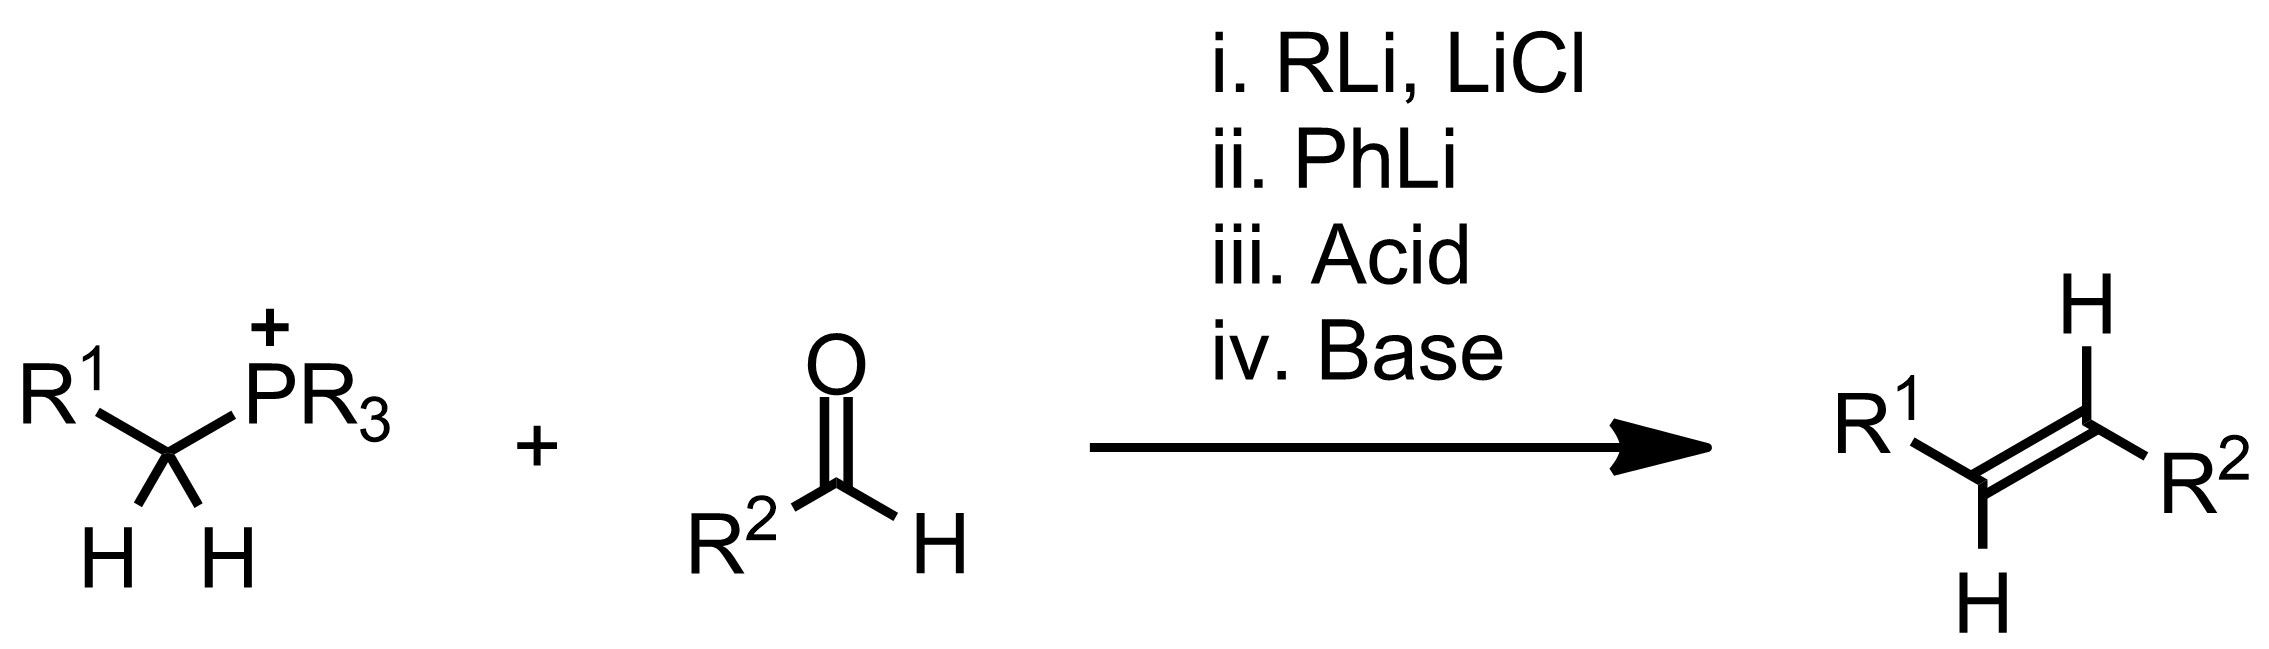 Schematic representation of the Schlosser Modification.